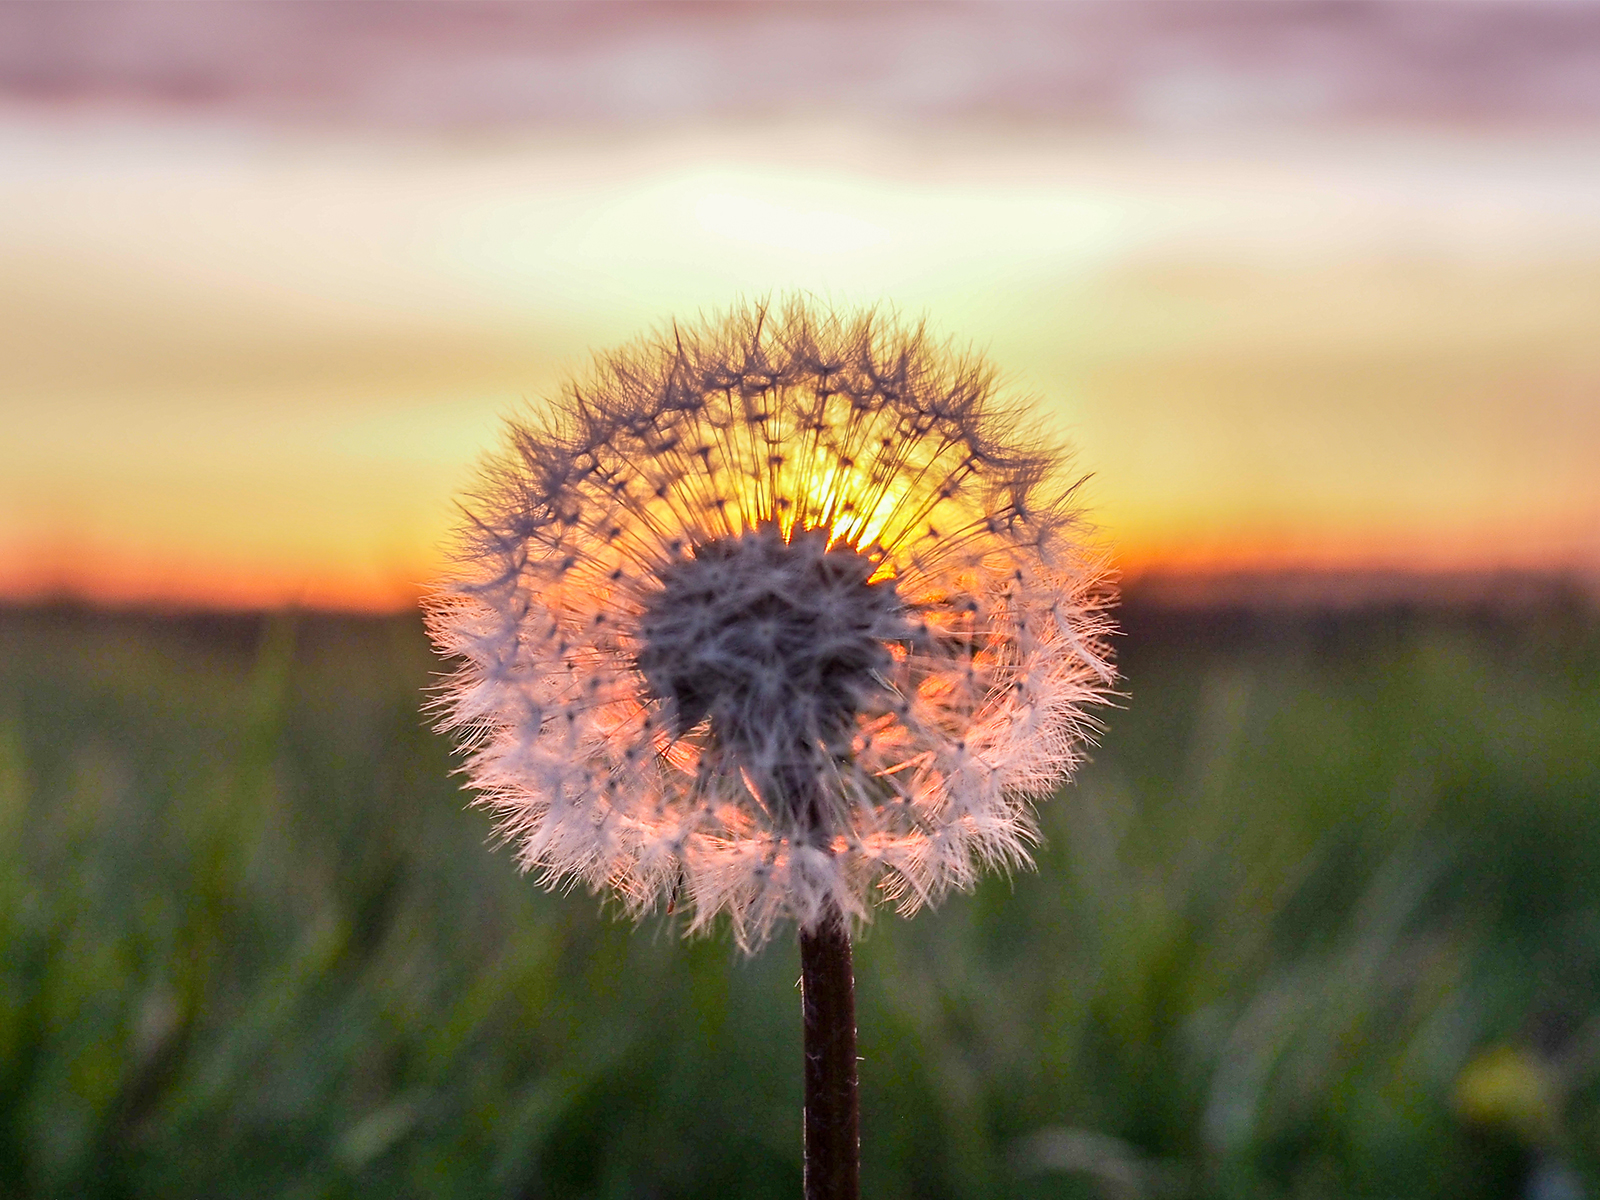 Sunset through a Dandelion - Nieuw Weerdinge